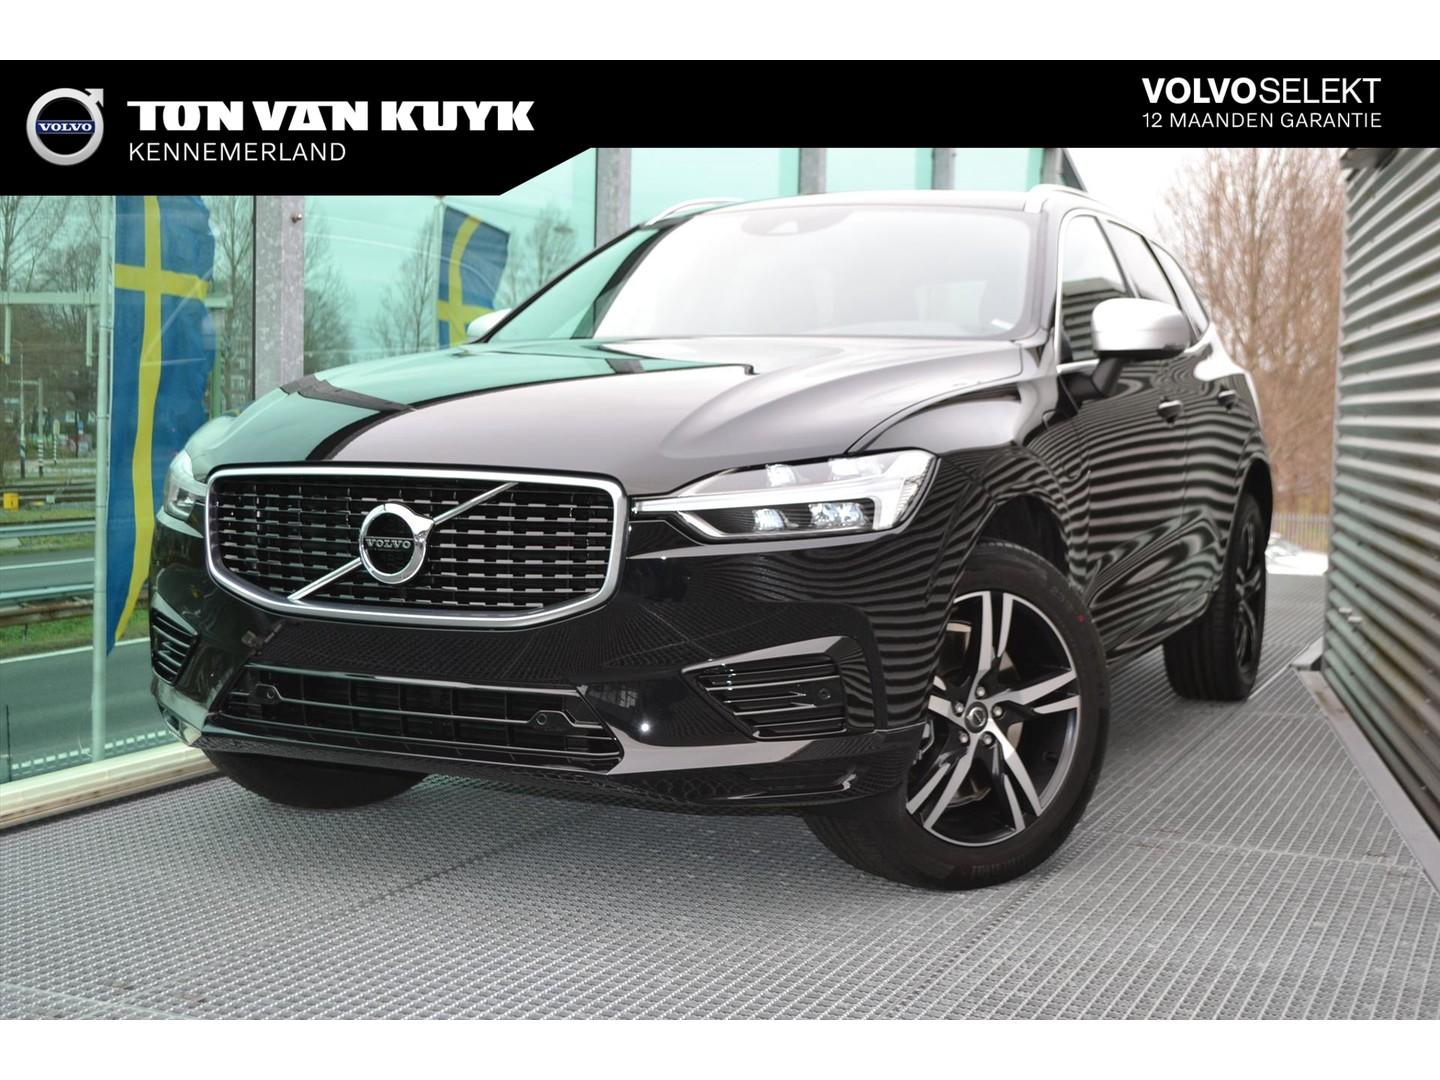 Volvo Xc60 T8 twin engine 390pk geartronic awd r-design / intellisafe / aud